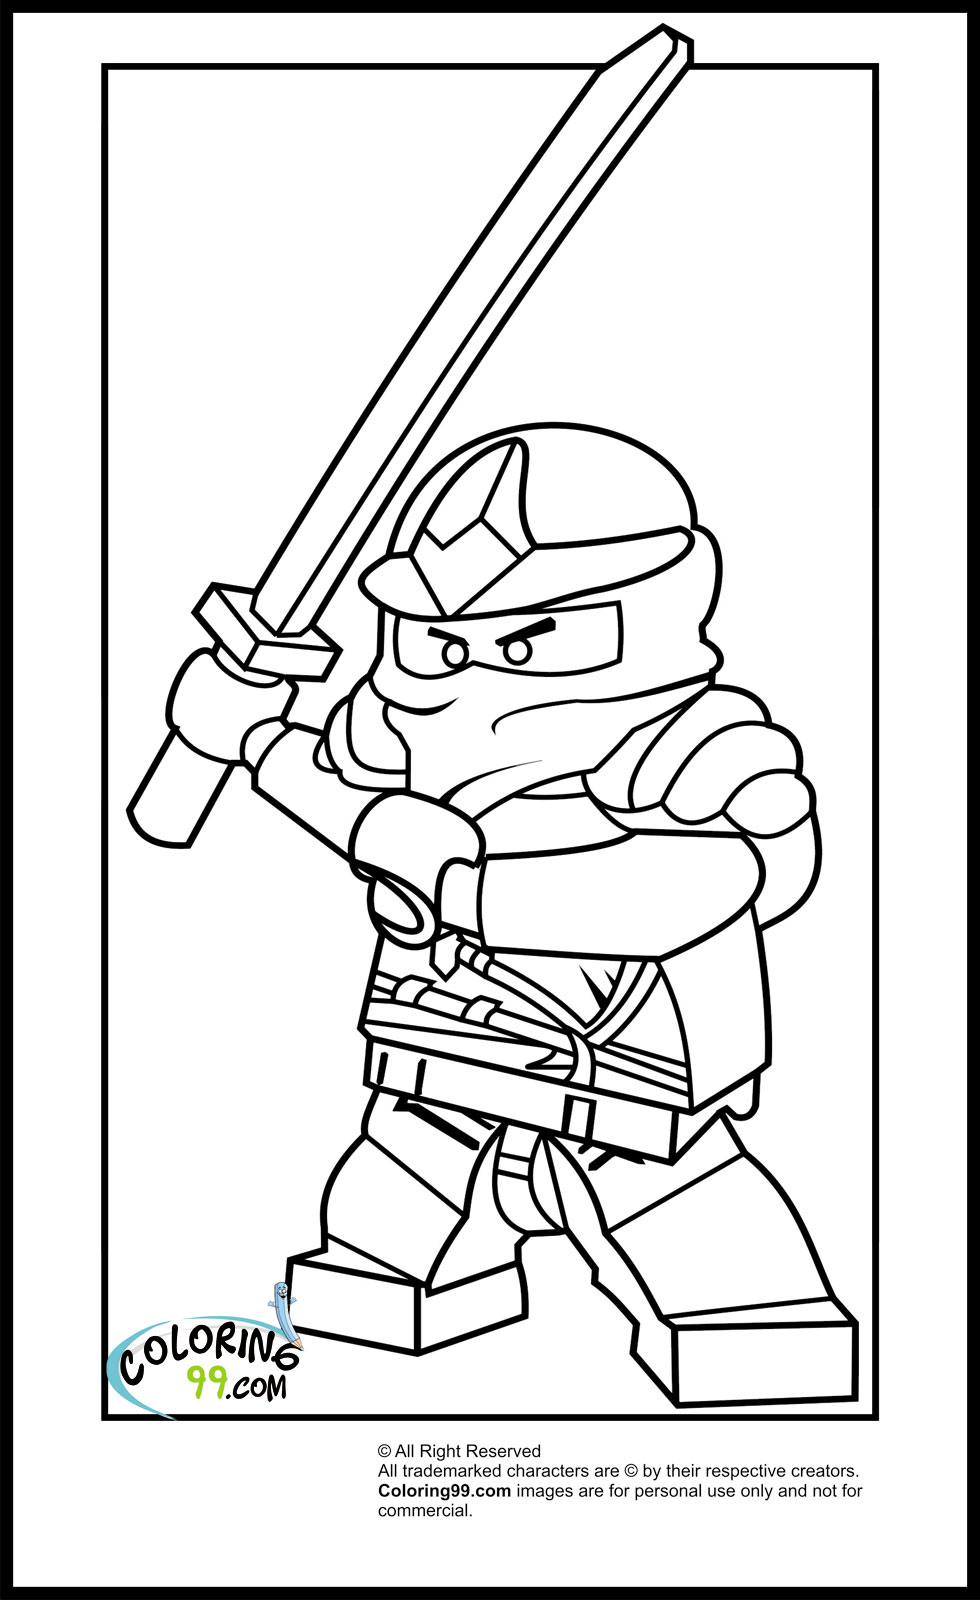 lego ninjago characters coloring pages-#18